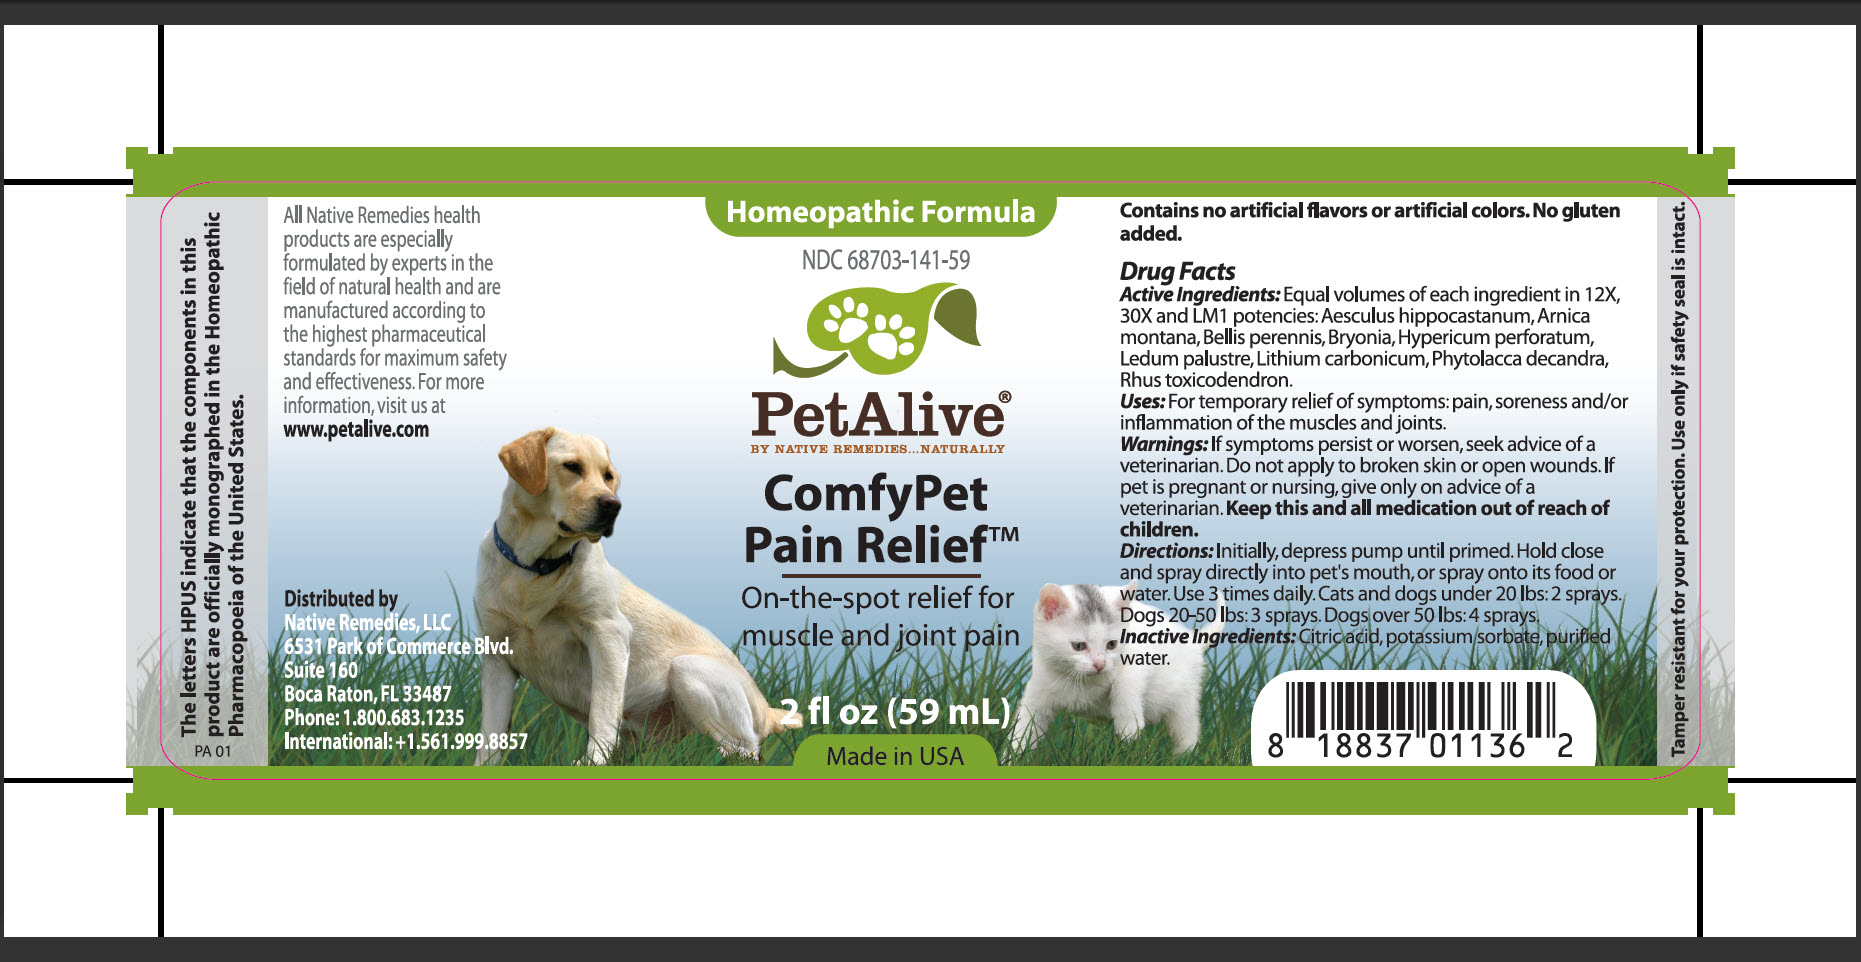 Comfypet Pain Relief (Aesculus Hippocastanum, Arnica Montana, Bellis Perennis, Bryonia, Hypericum Perforatum, Ledum Palustre, Lithium Carbonicum, Phytolacca Decandra, Rhus Toxicodendron) Spray [Native Remedies, Llc]